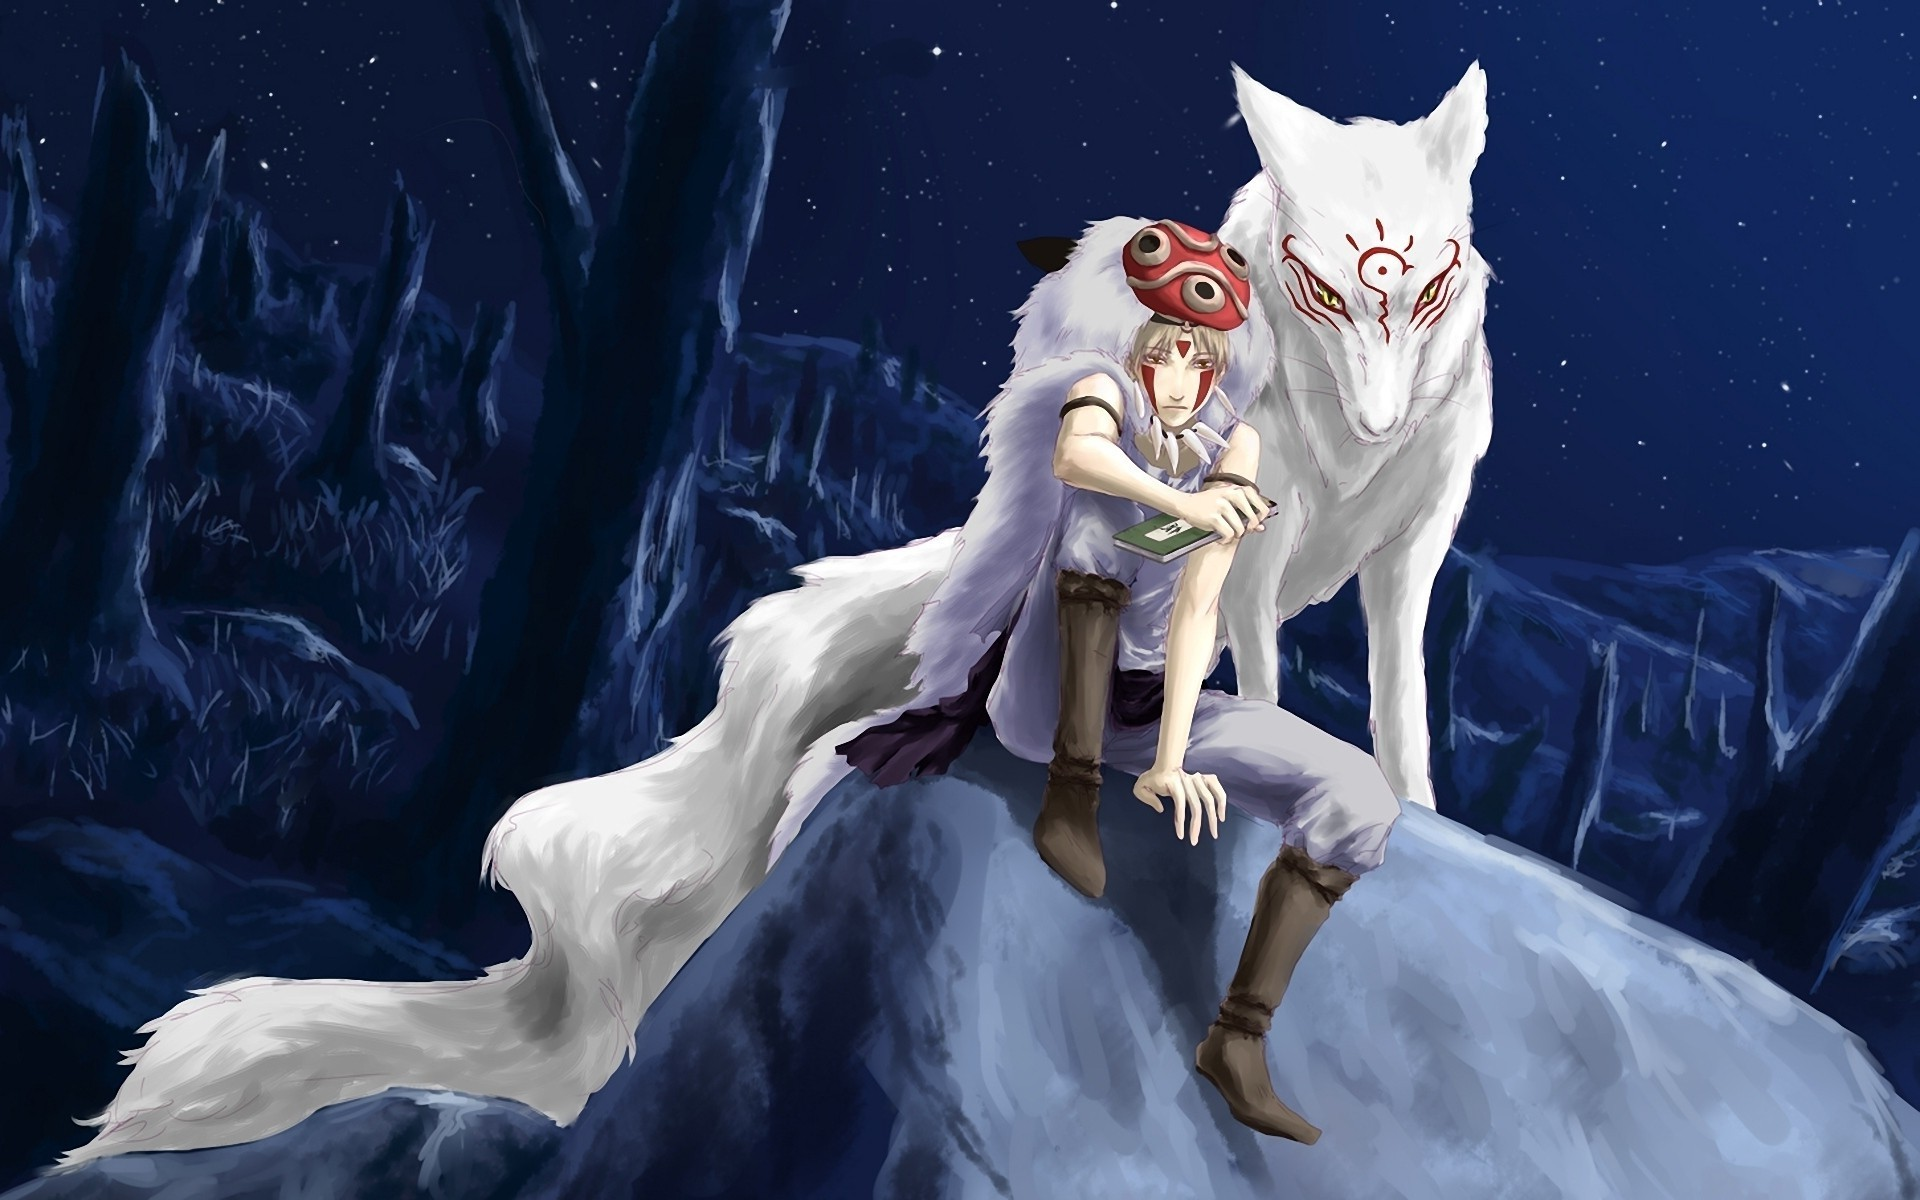 Princess Mononoke Wallpaper Hd 69 Images